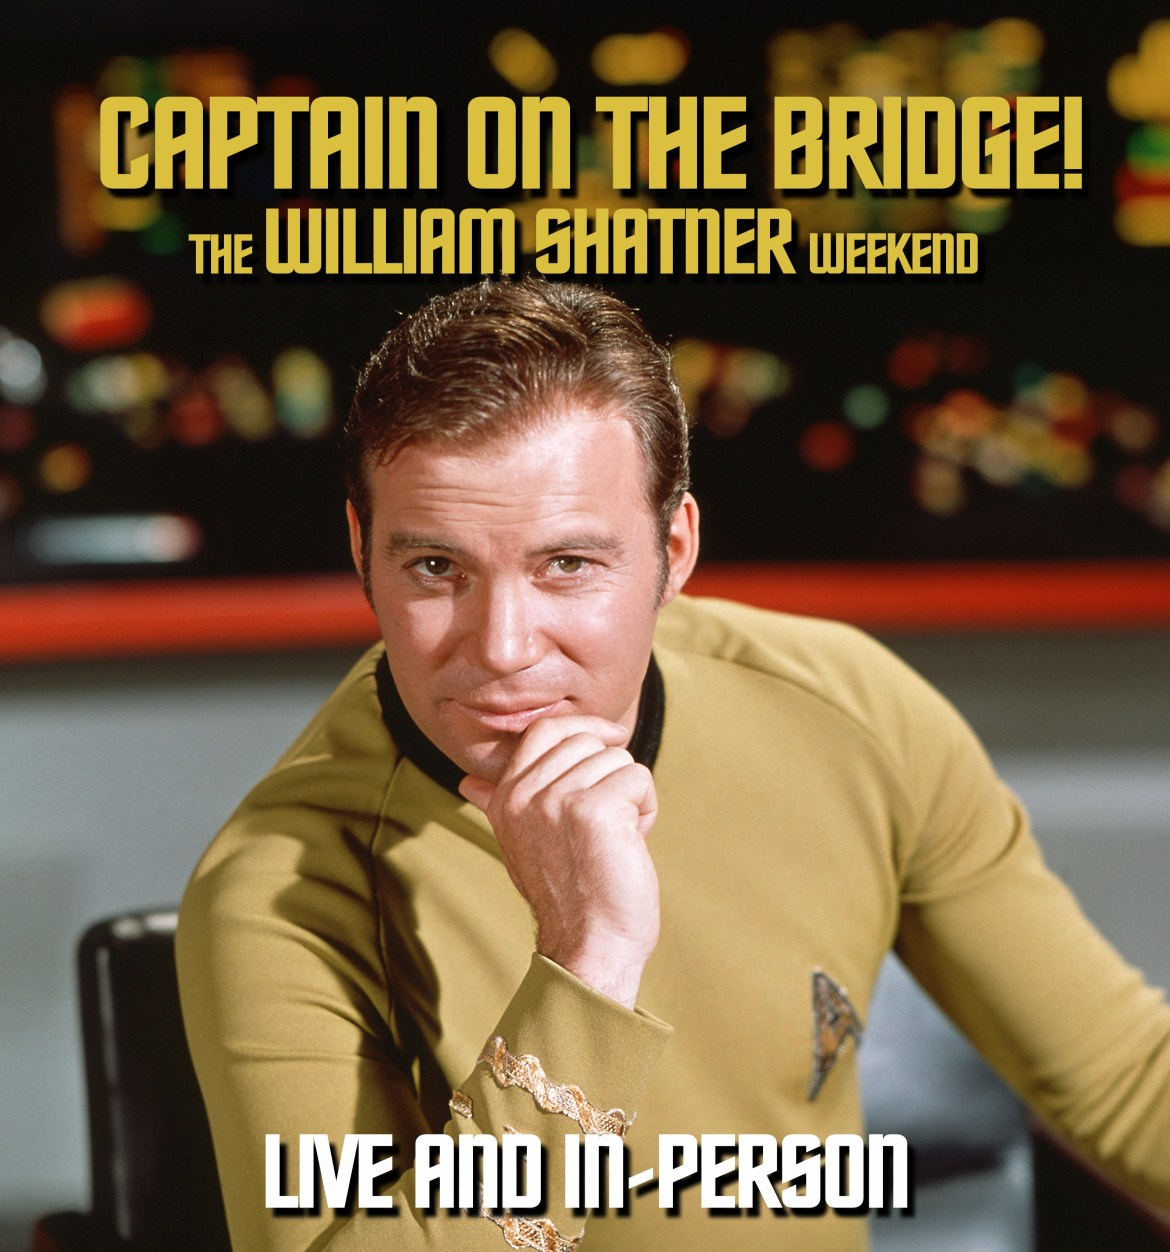 William Shatner Ticonderoga